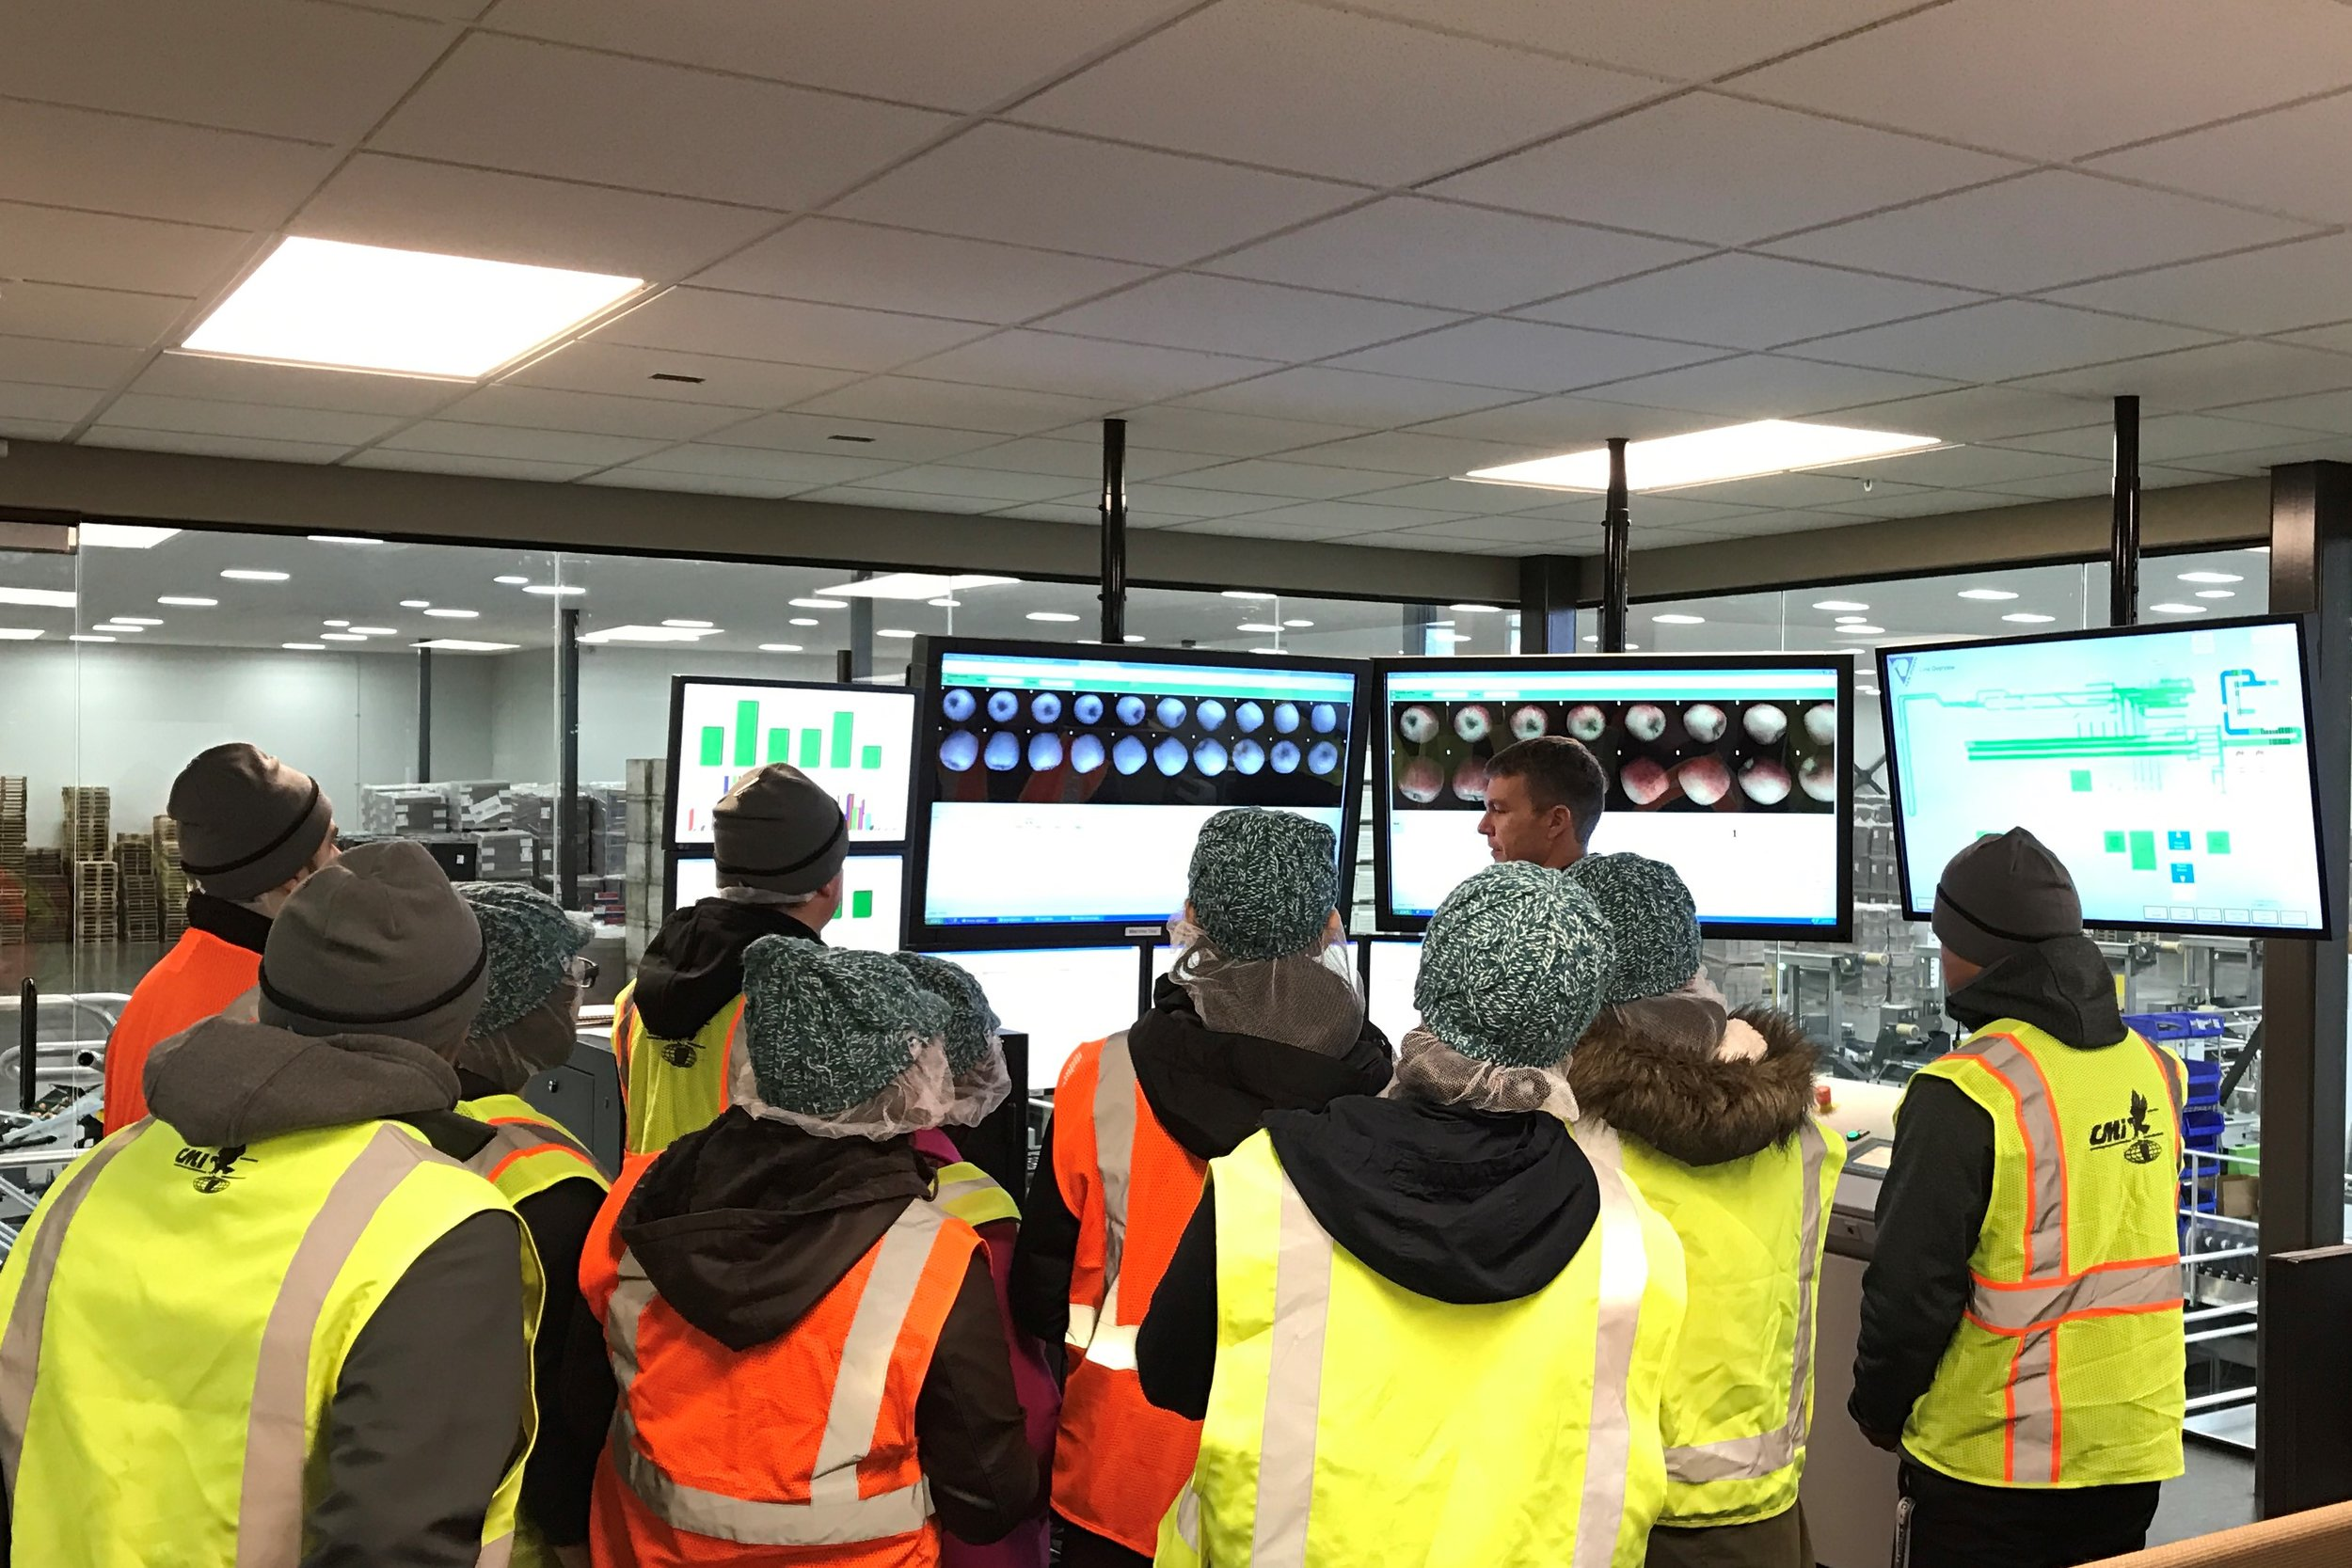 Learning about monitoring and managing apples moving across the high-tech packing lines.